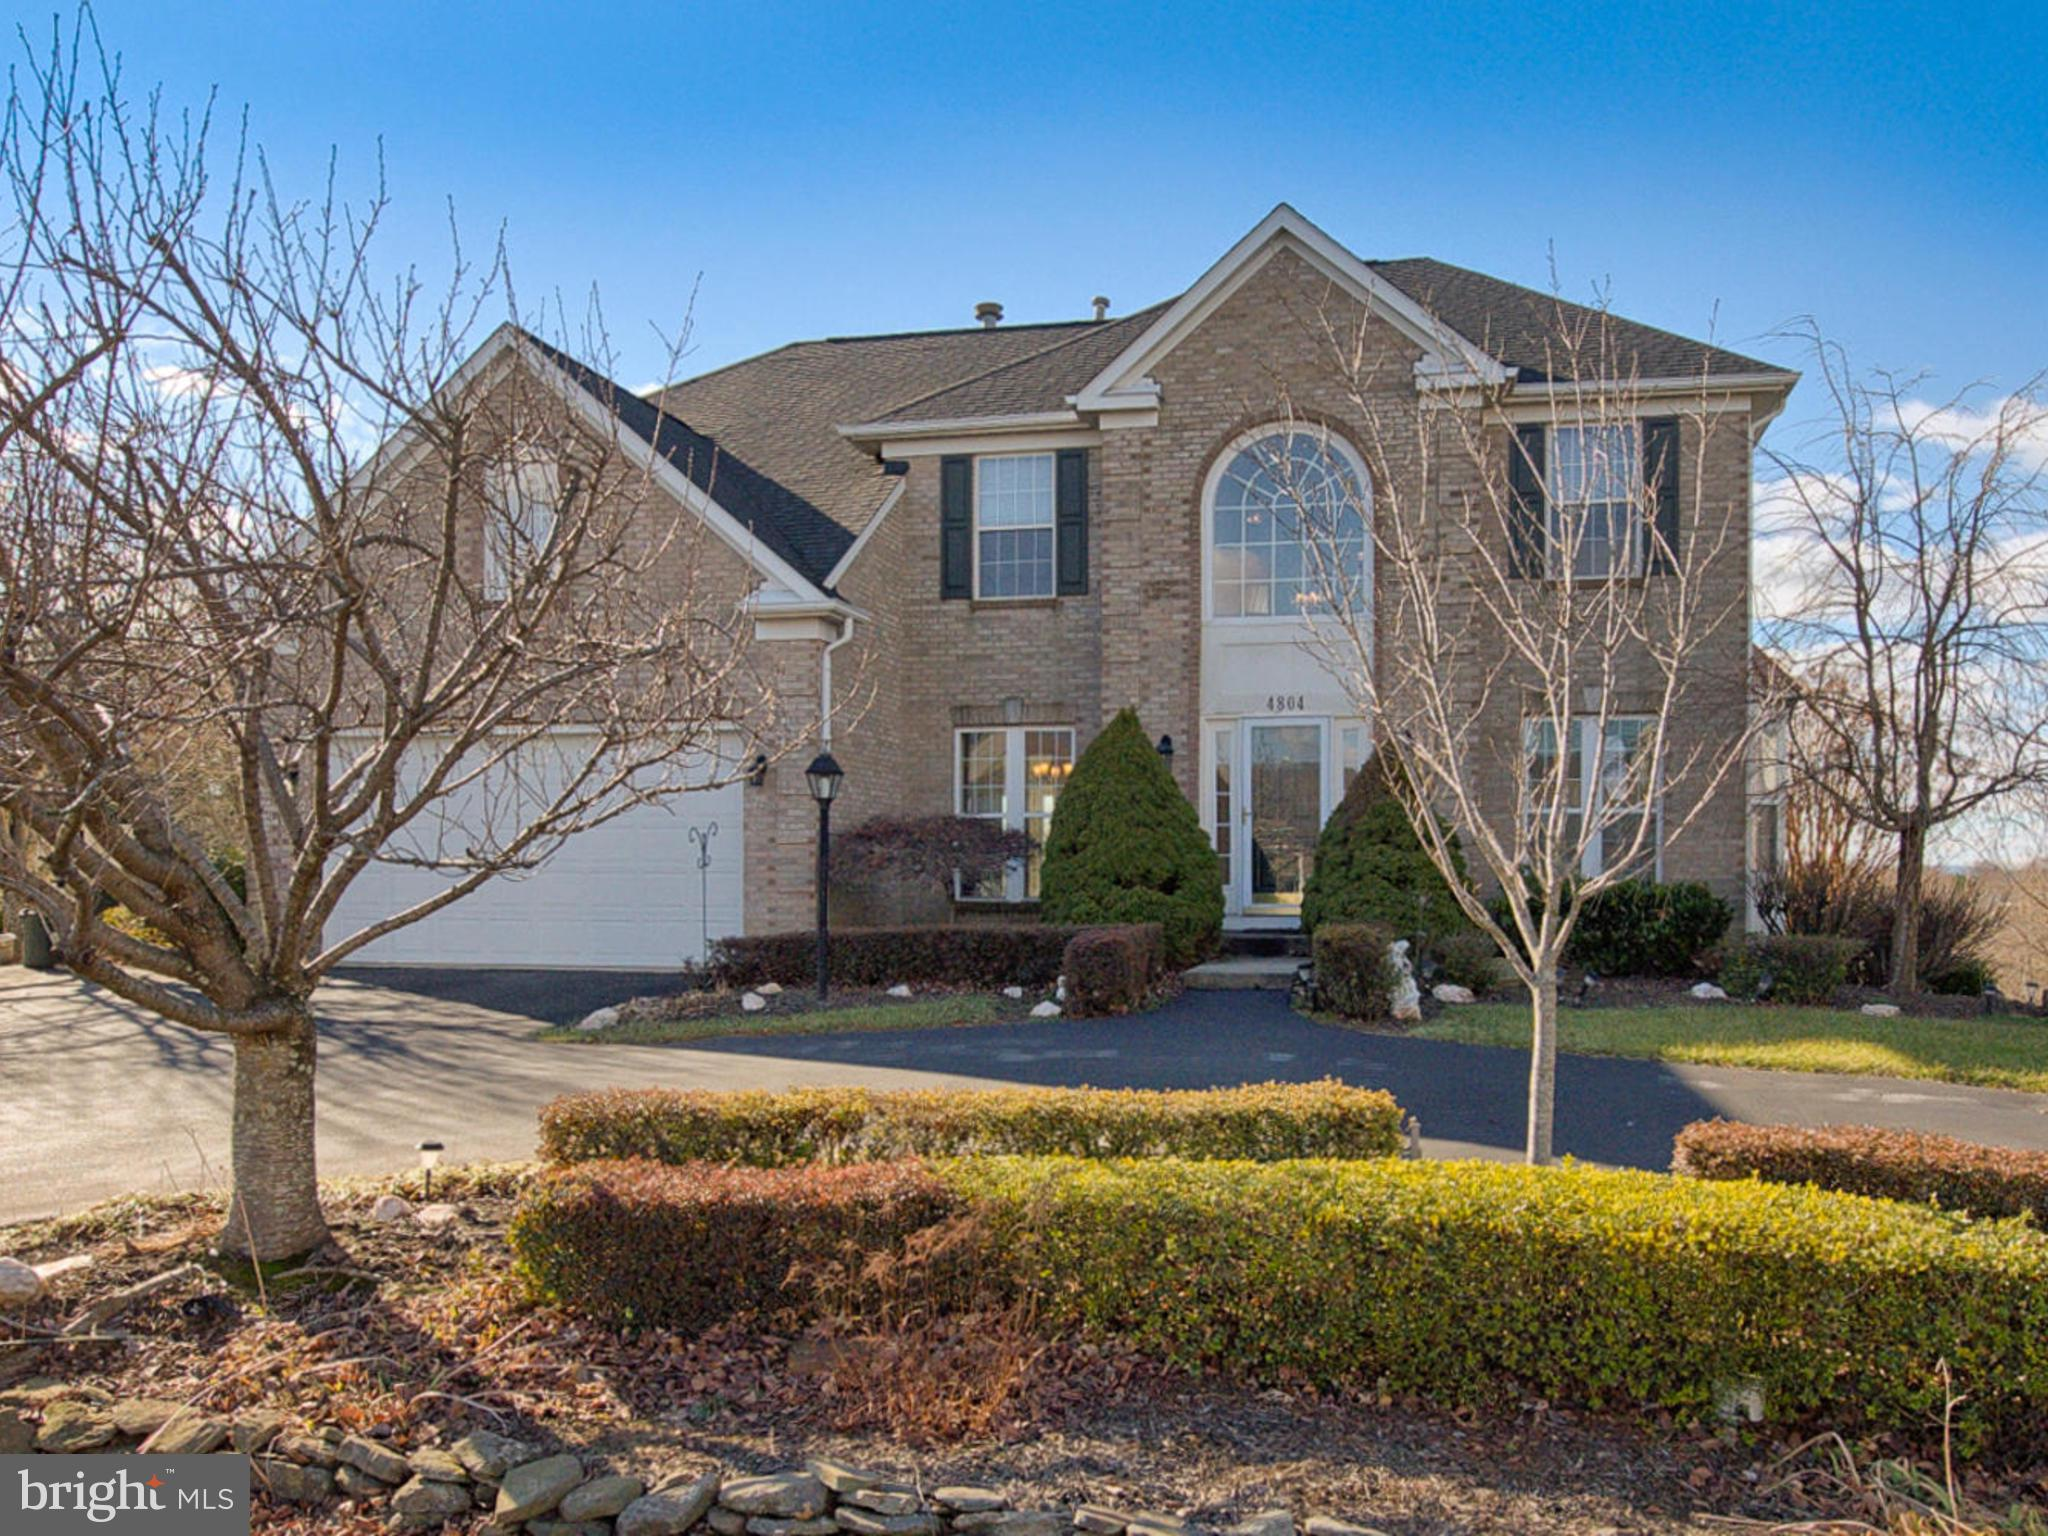 4804 STOCKTON DRIVE, JEFFERSON, MD 21755